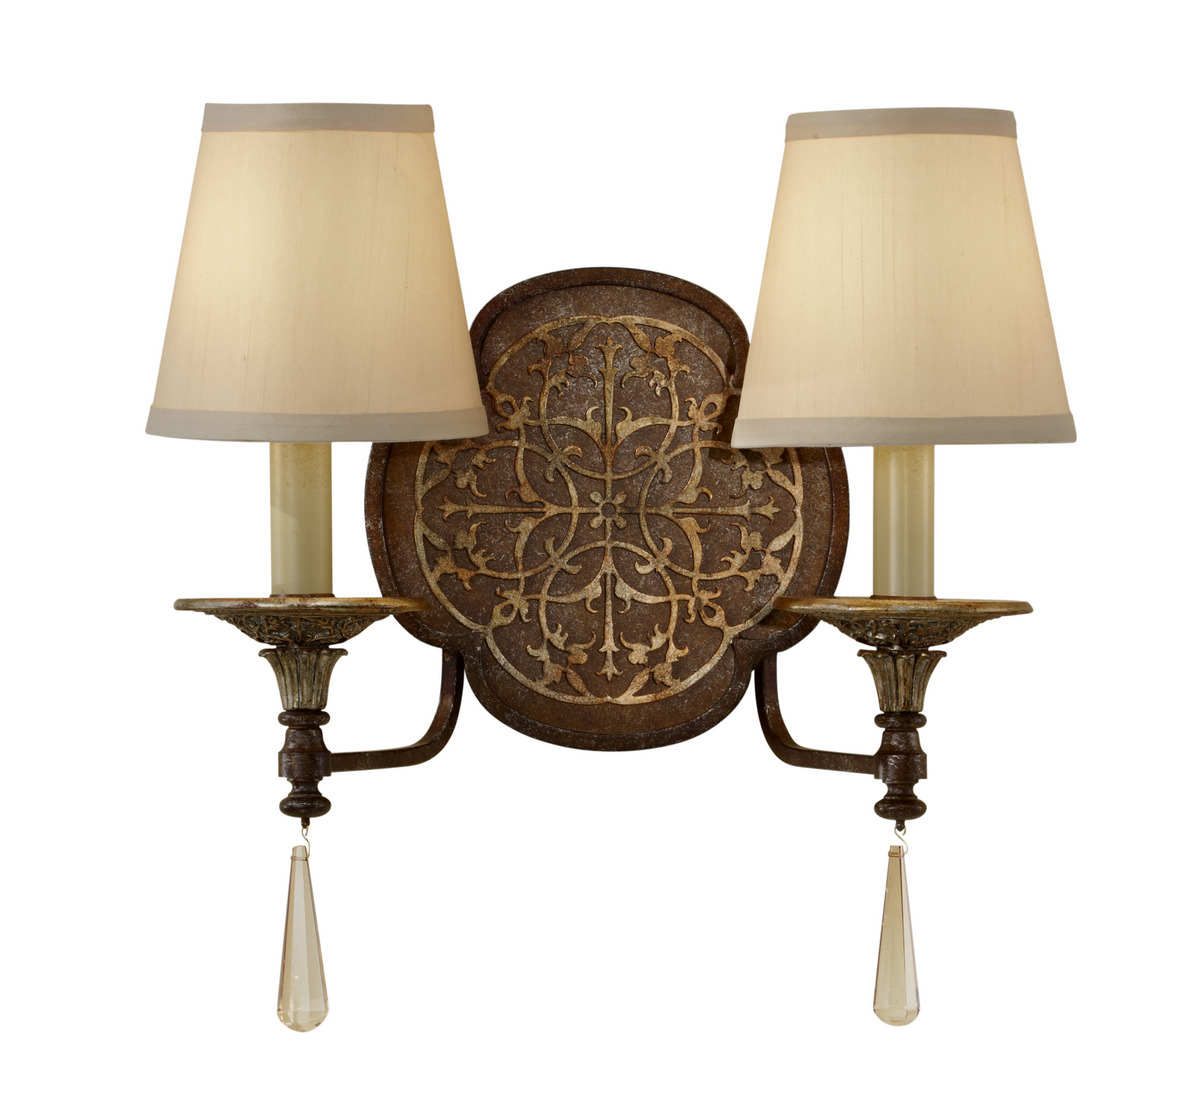 Marcella At Town Center: Feiss Marcella WB1530BRB / OBZ Wall Sconce